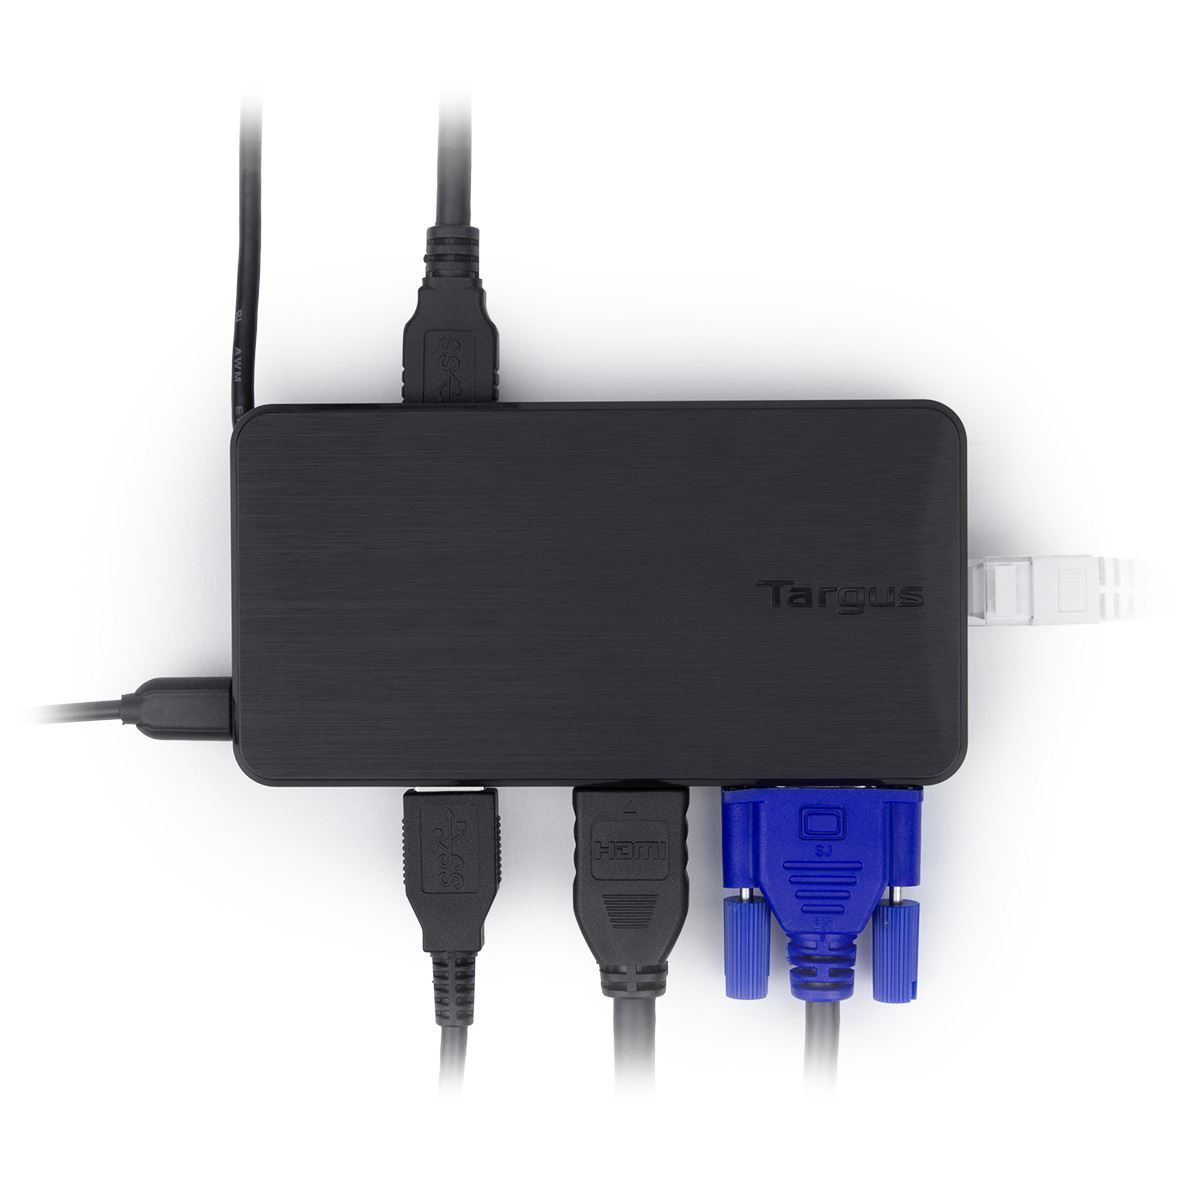 Targus Usb Multi Display Adapter Black Previously